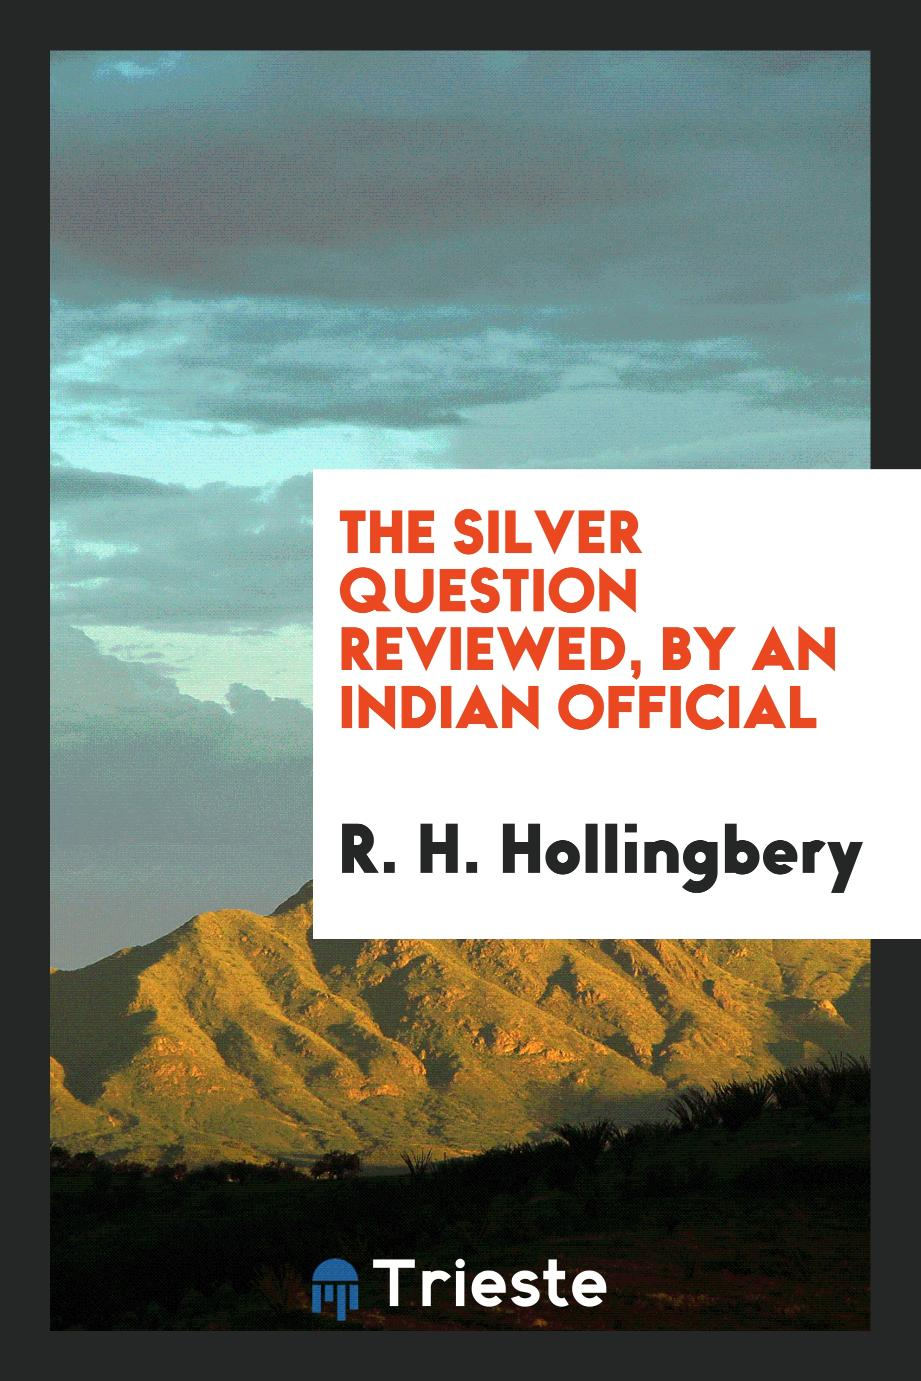 The Silver Question Reviewed, by an Indian Official